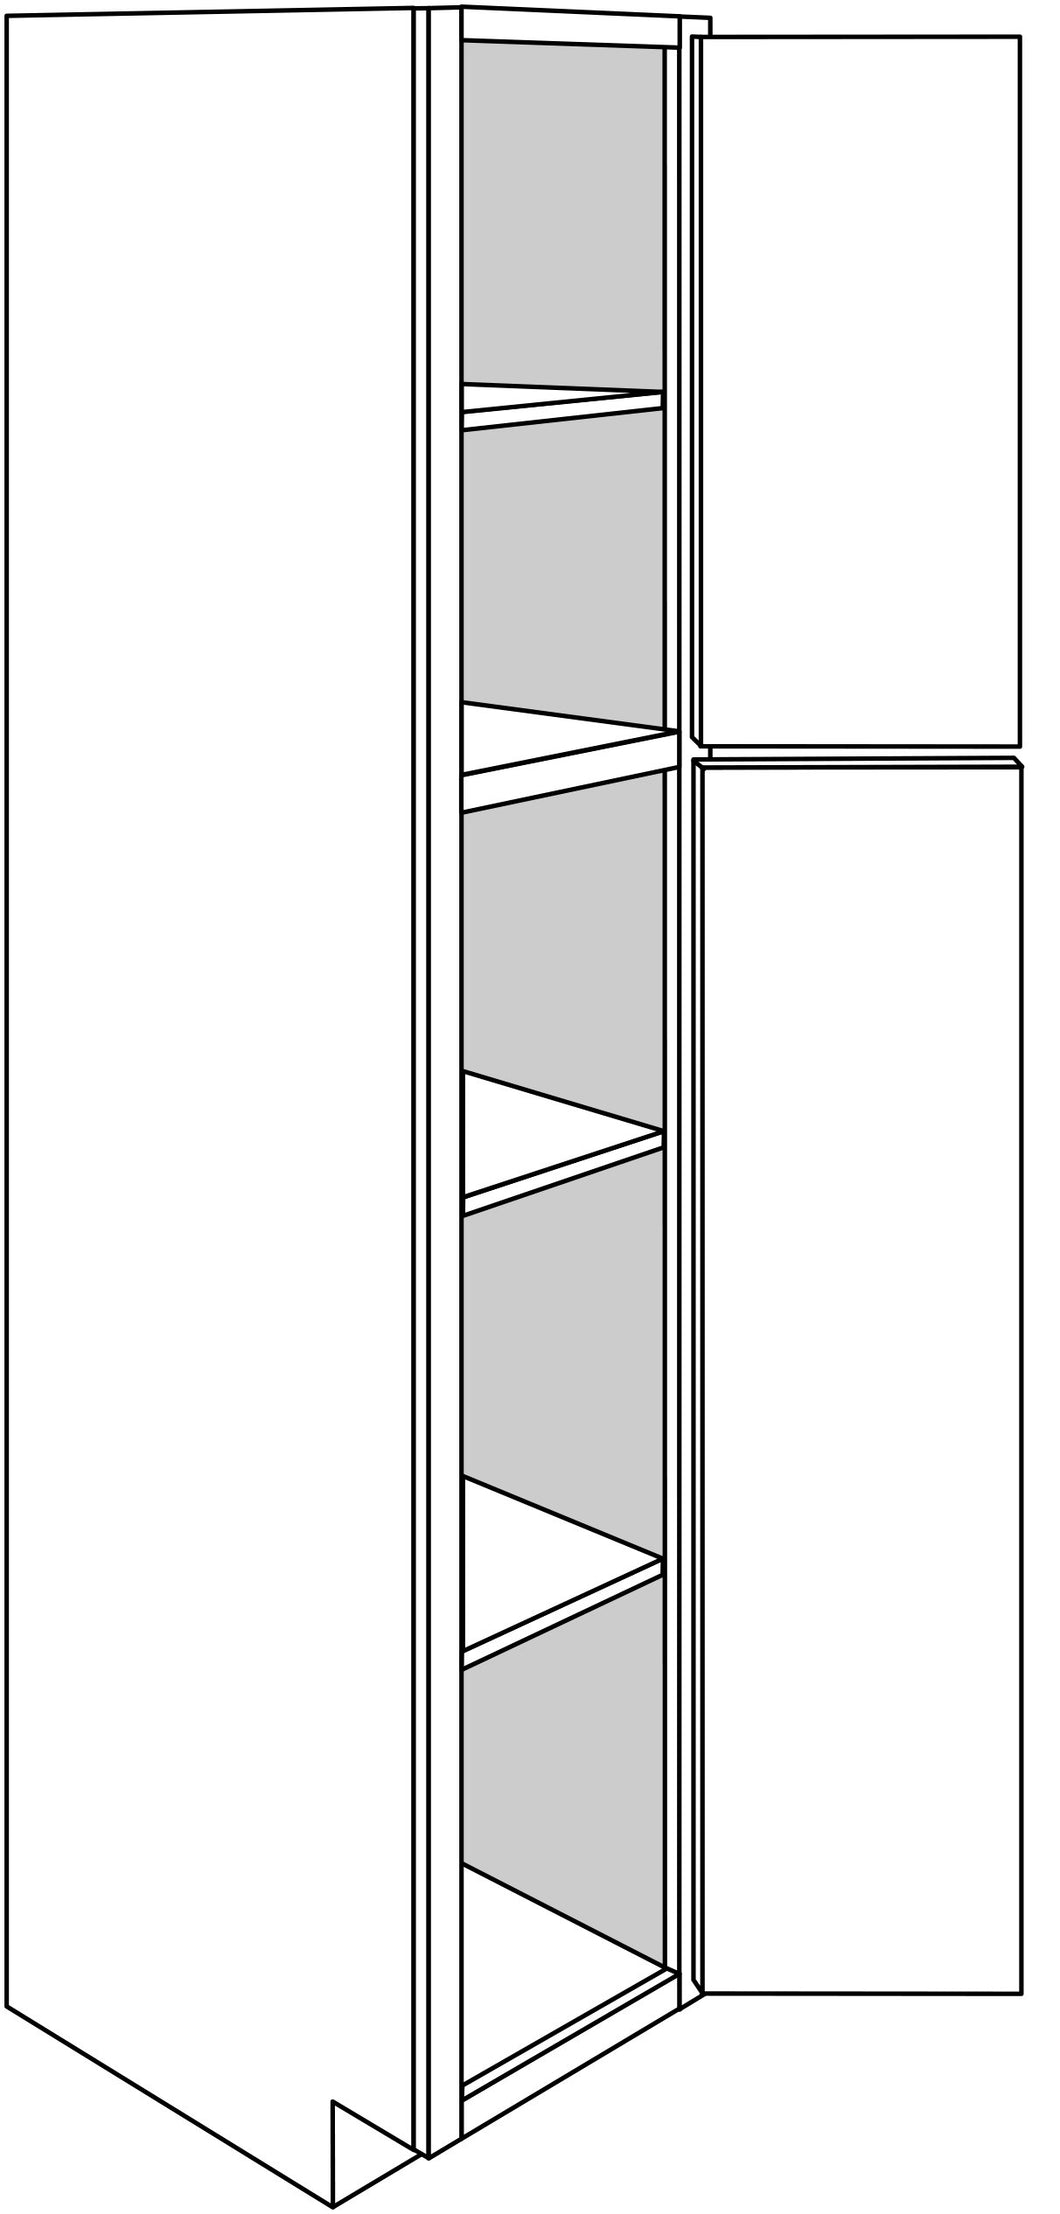 QUINCY TALL CABINETS: 18